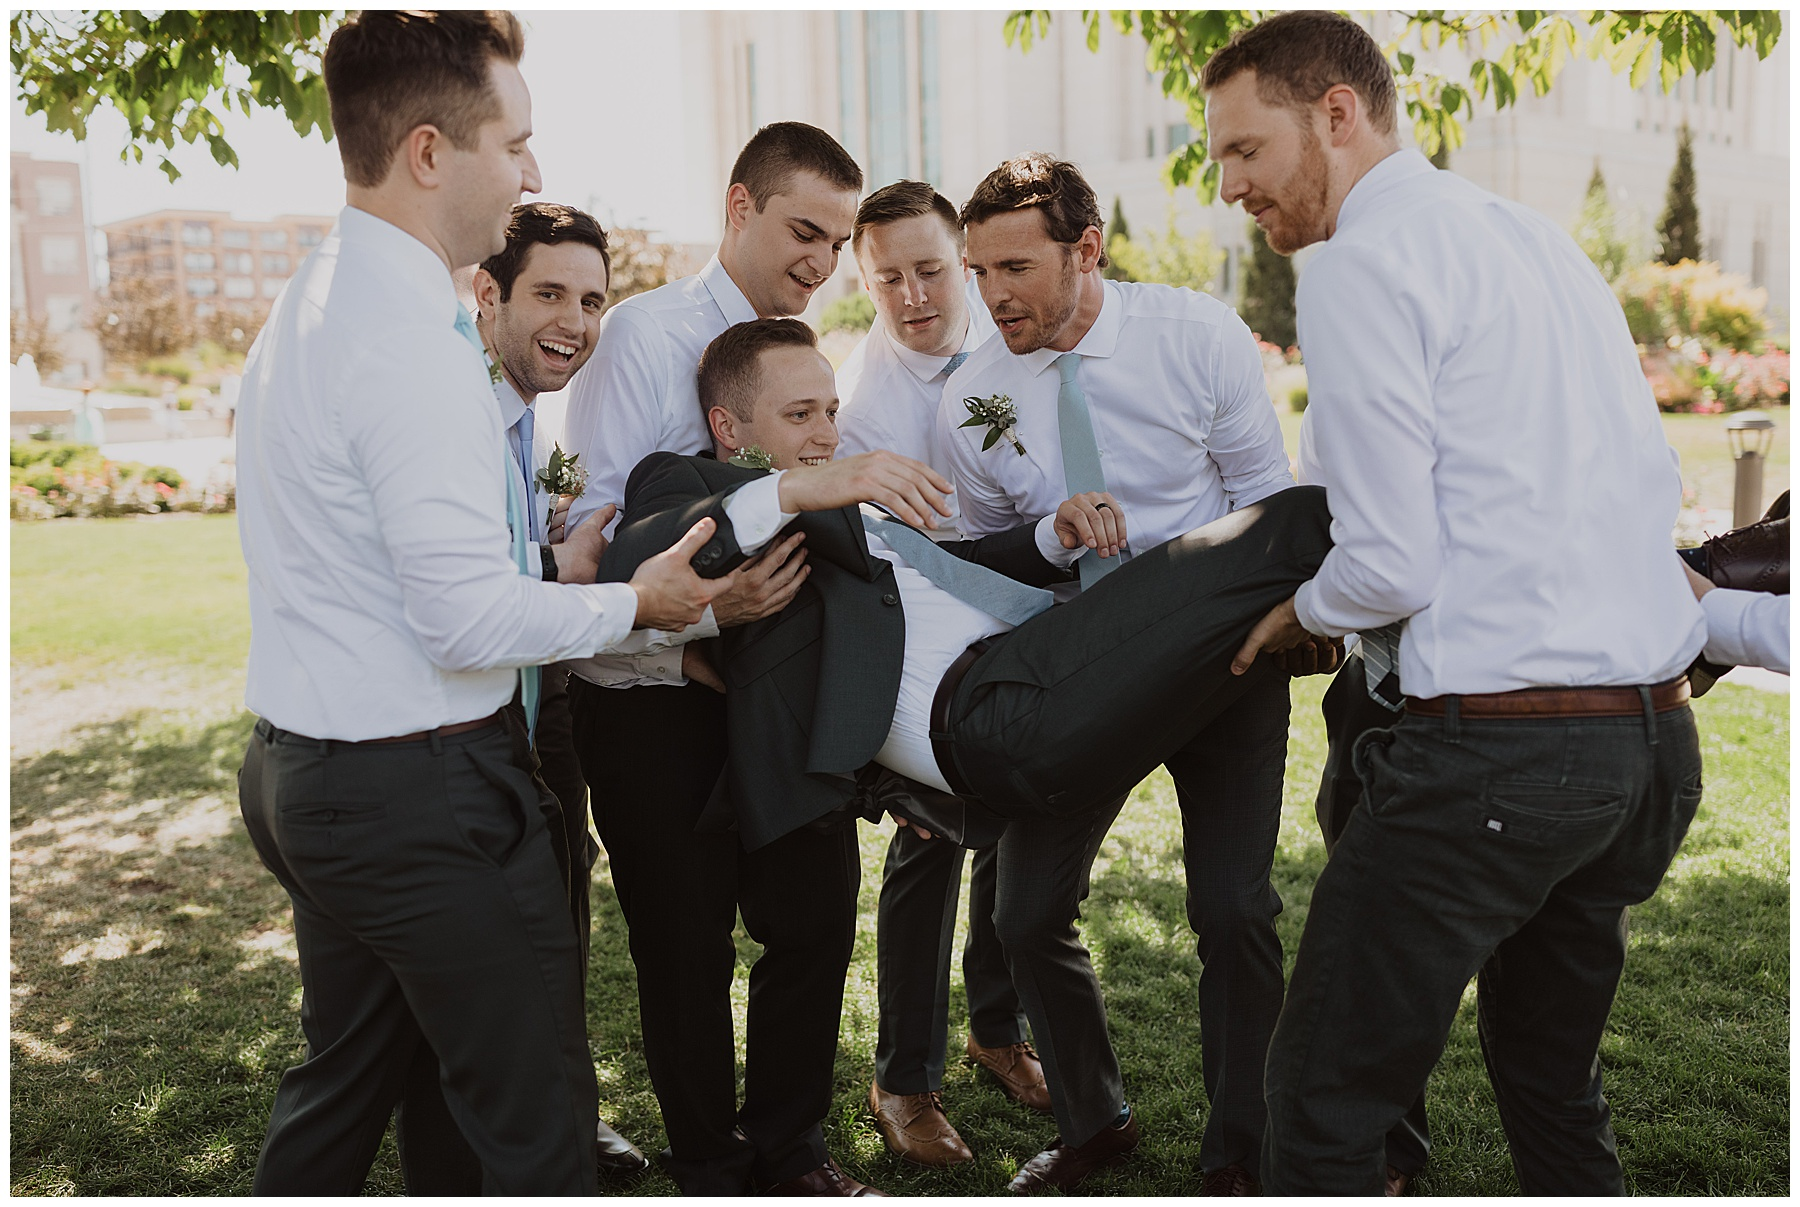 Groomsmen throw groom in the air after he is married